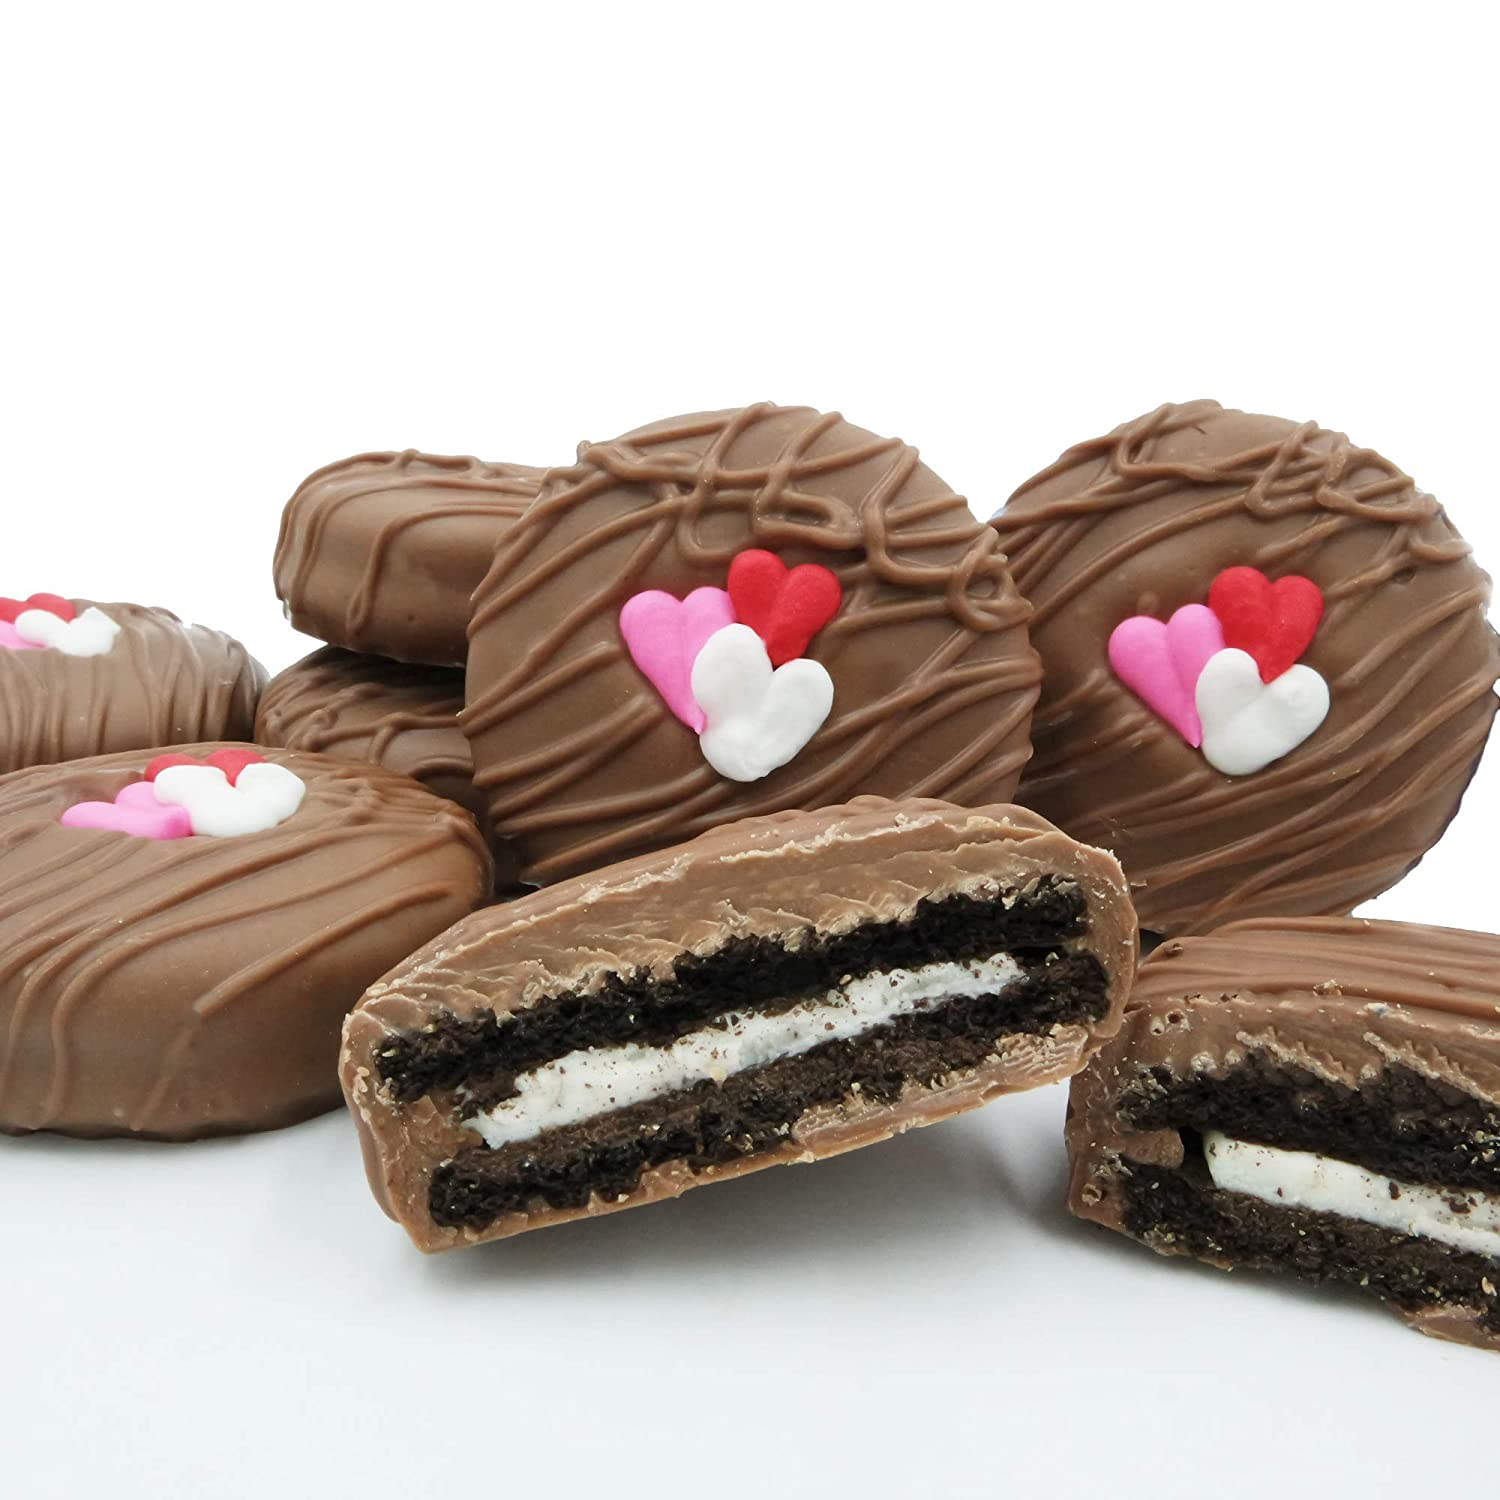 Philadelphia Candies Milk Chocolate Covered Oreo Cookies Valentine S Day Gift 8 Ounce Amazon Com Grocery Gourmet Food